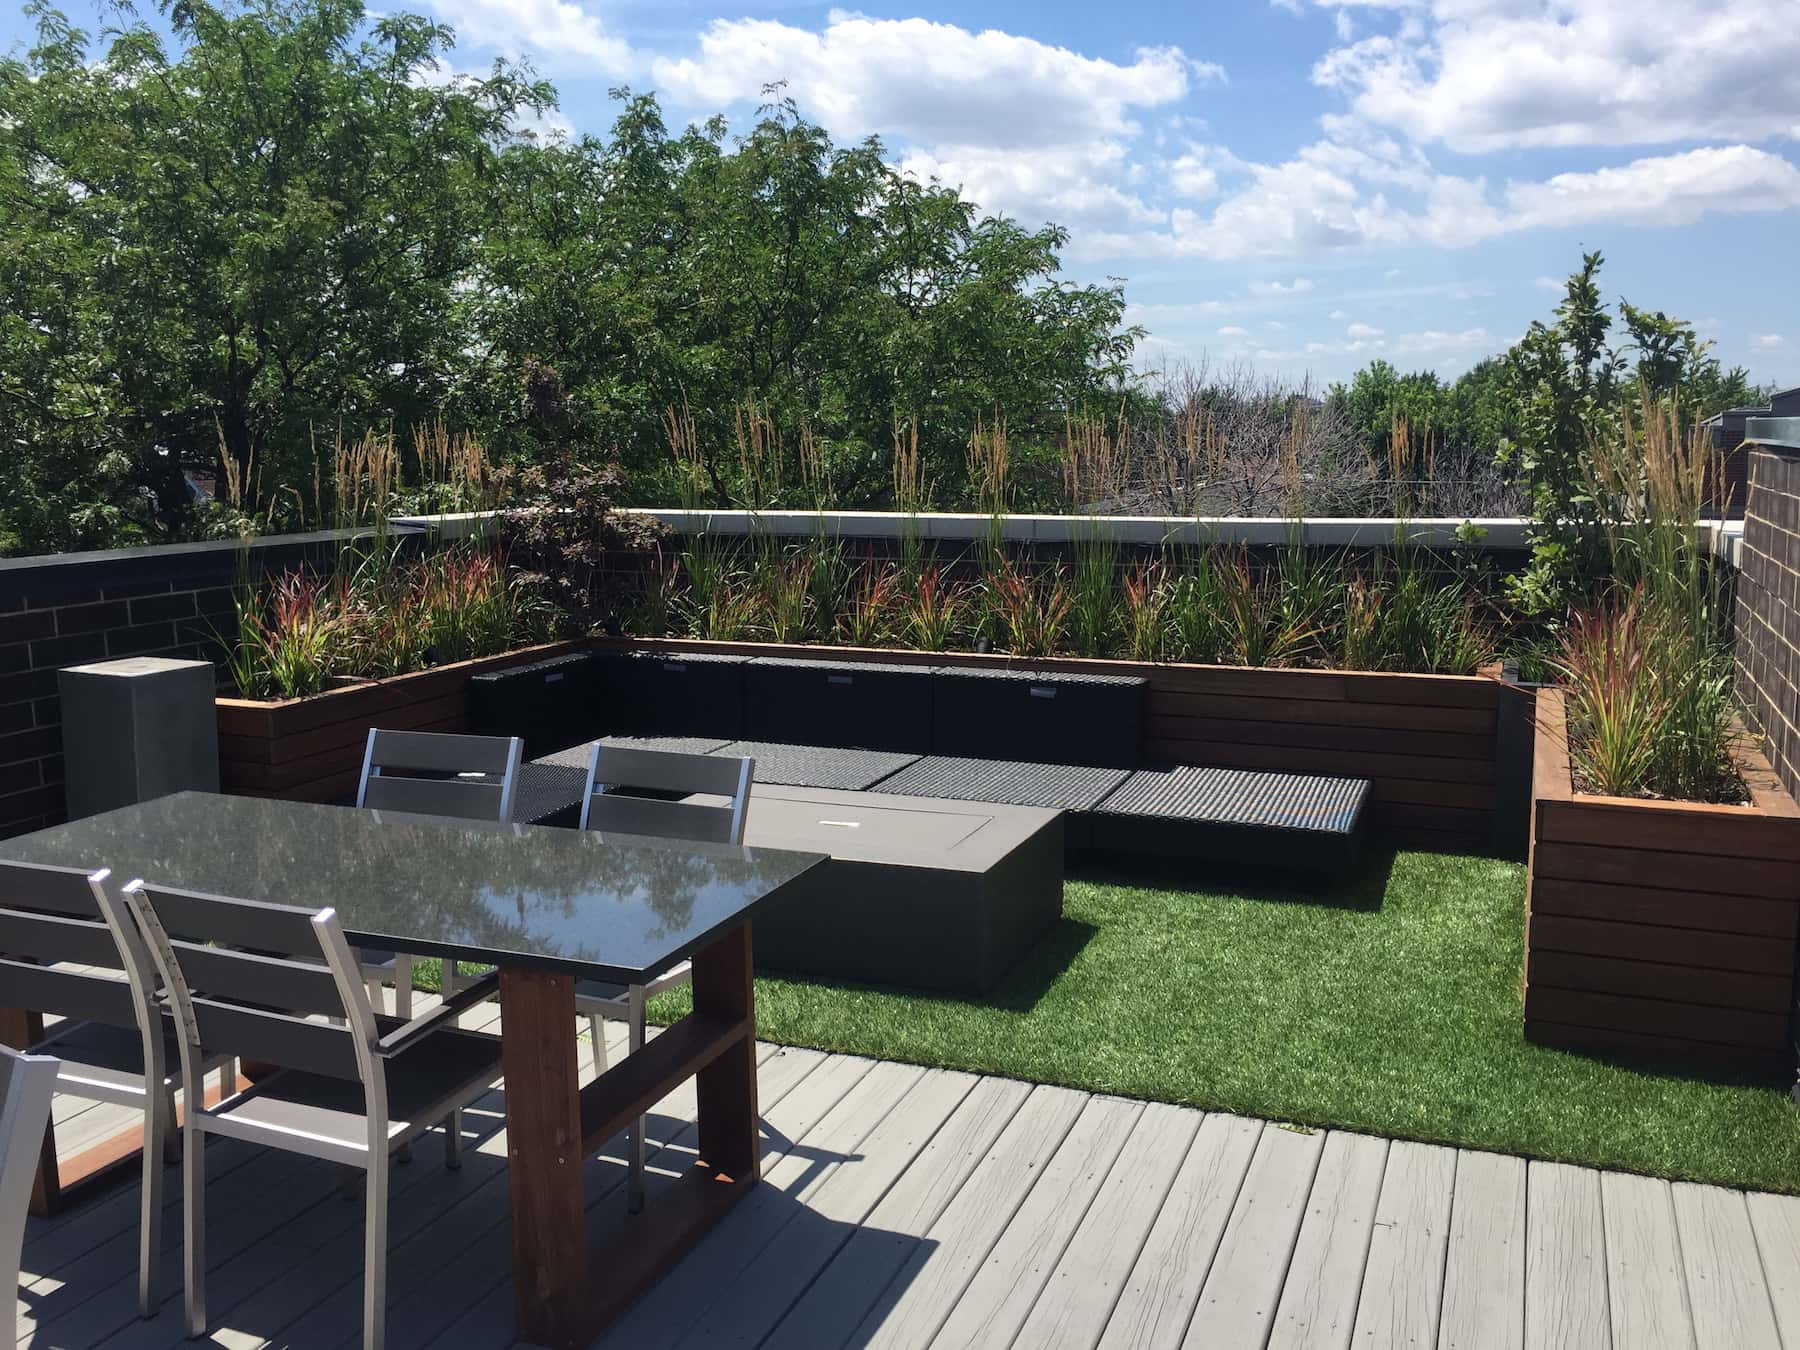 Rooftop Dining With Built-In Planters & Green Space